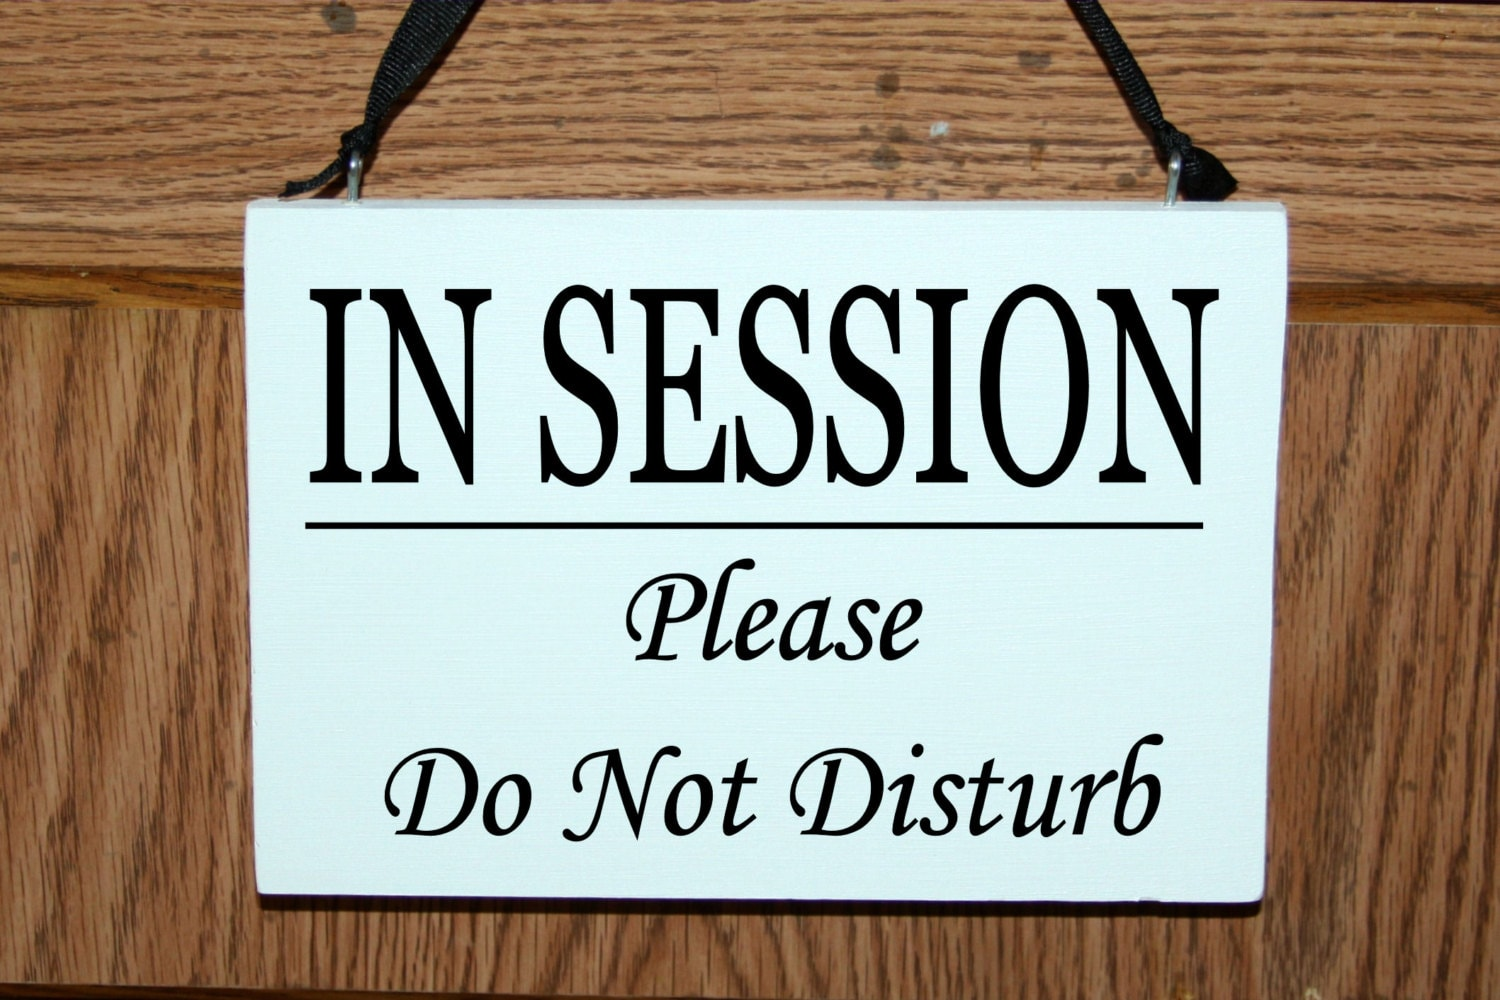 in session sign for door